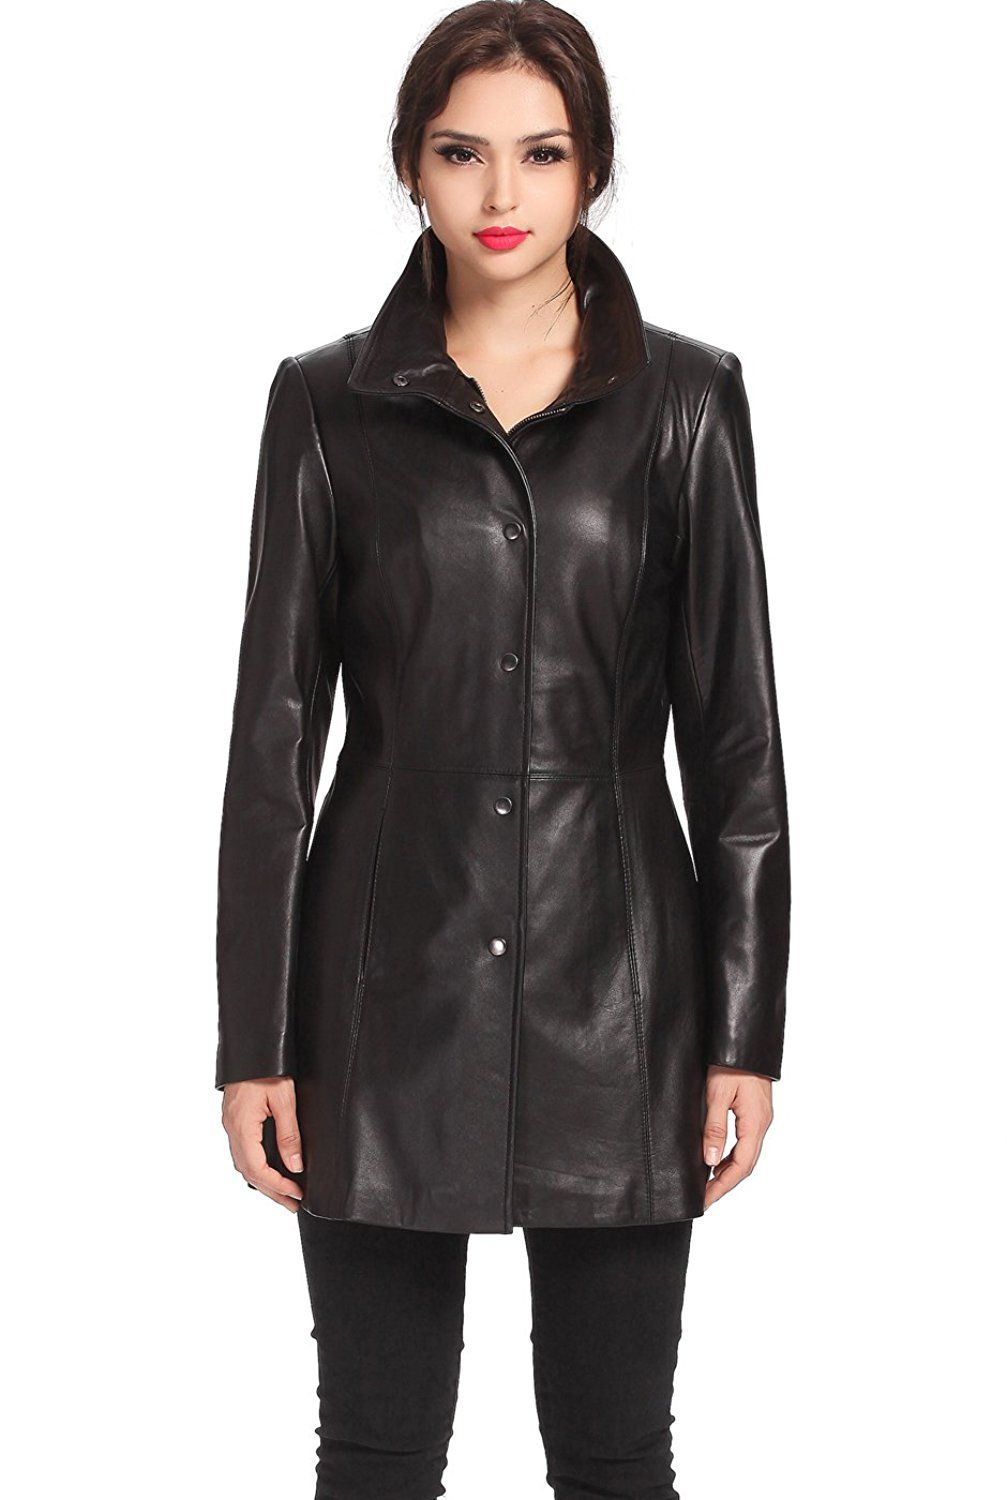 616949590ae BGSD Women s  Jocelyn  Missy and Plus Size New Zealand Lambskin Leather Car  Coat    This is an Amazon Affiliate link. Find out more about the great  product ...